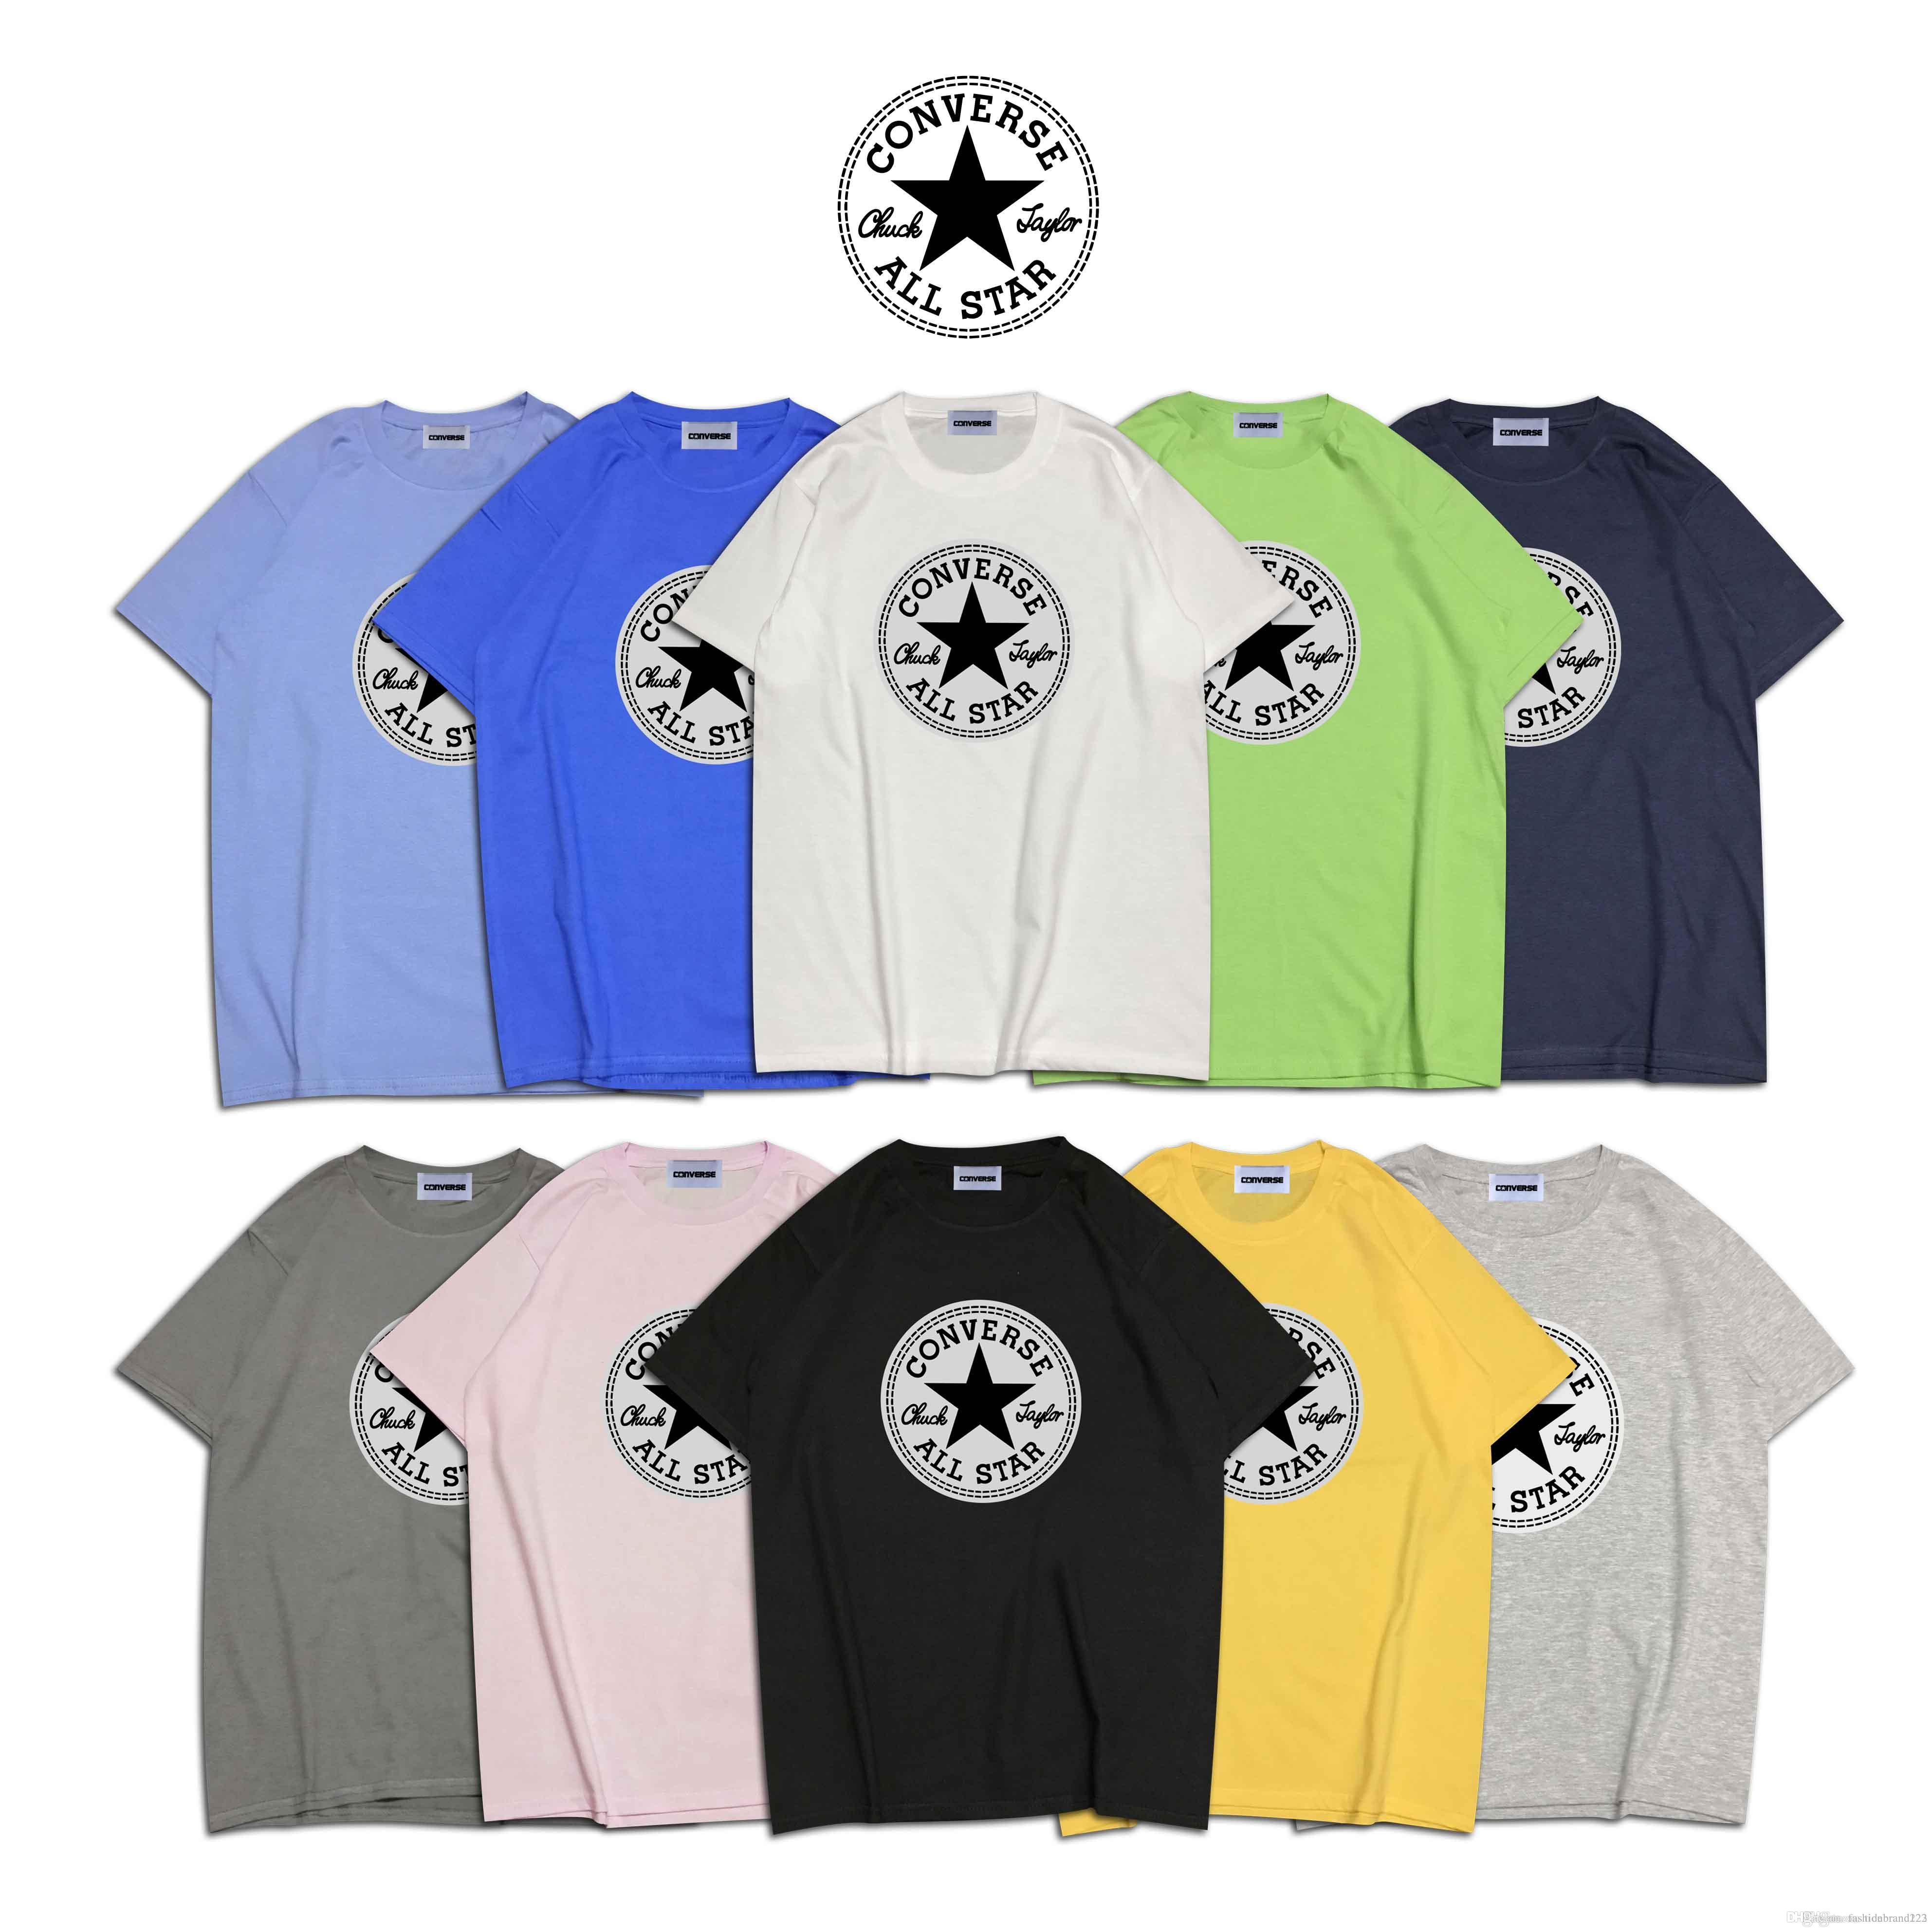 440cbfd66c converse Multi-color optional high quality cotton round neck breathable  printed short-sleeved couple T-shirt men's designer T-shir